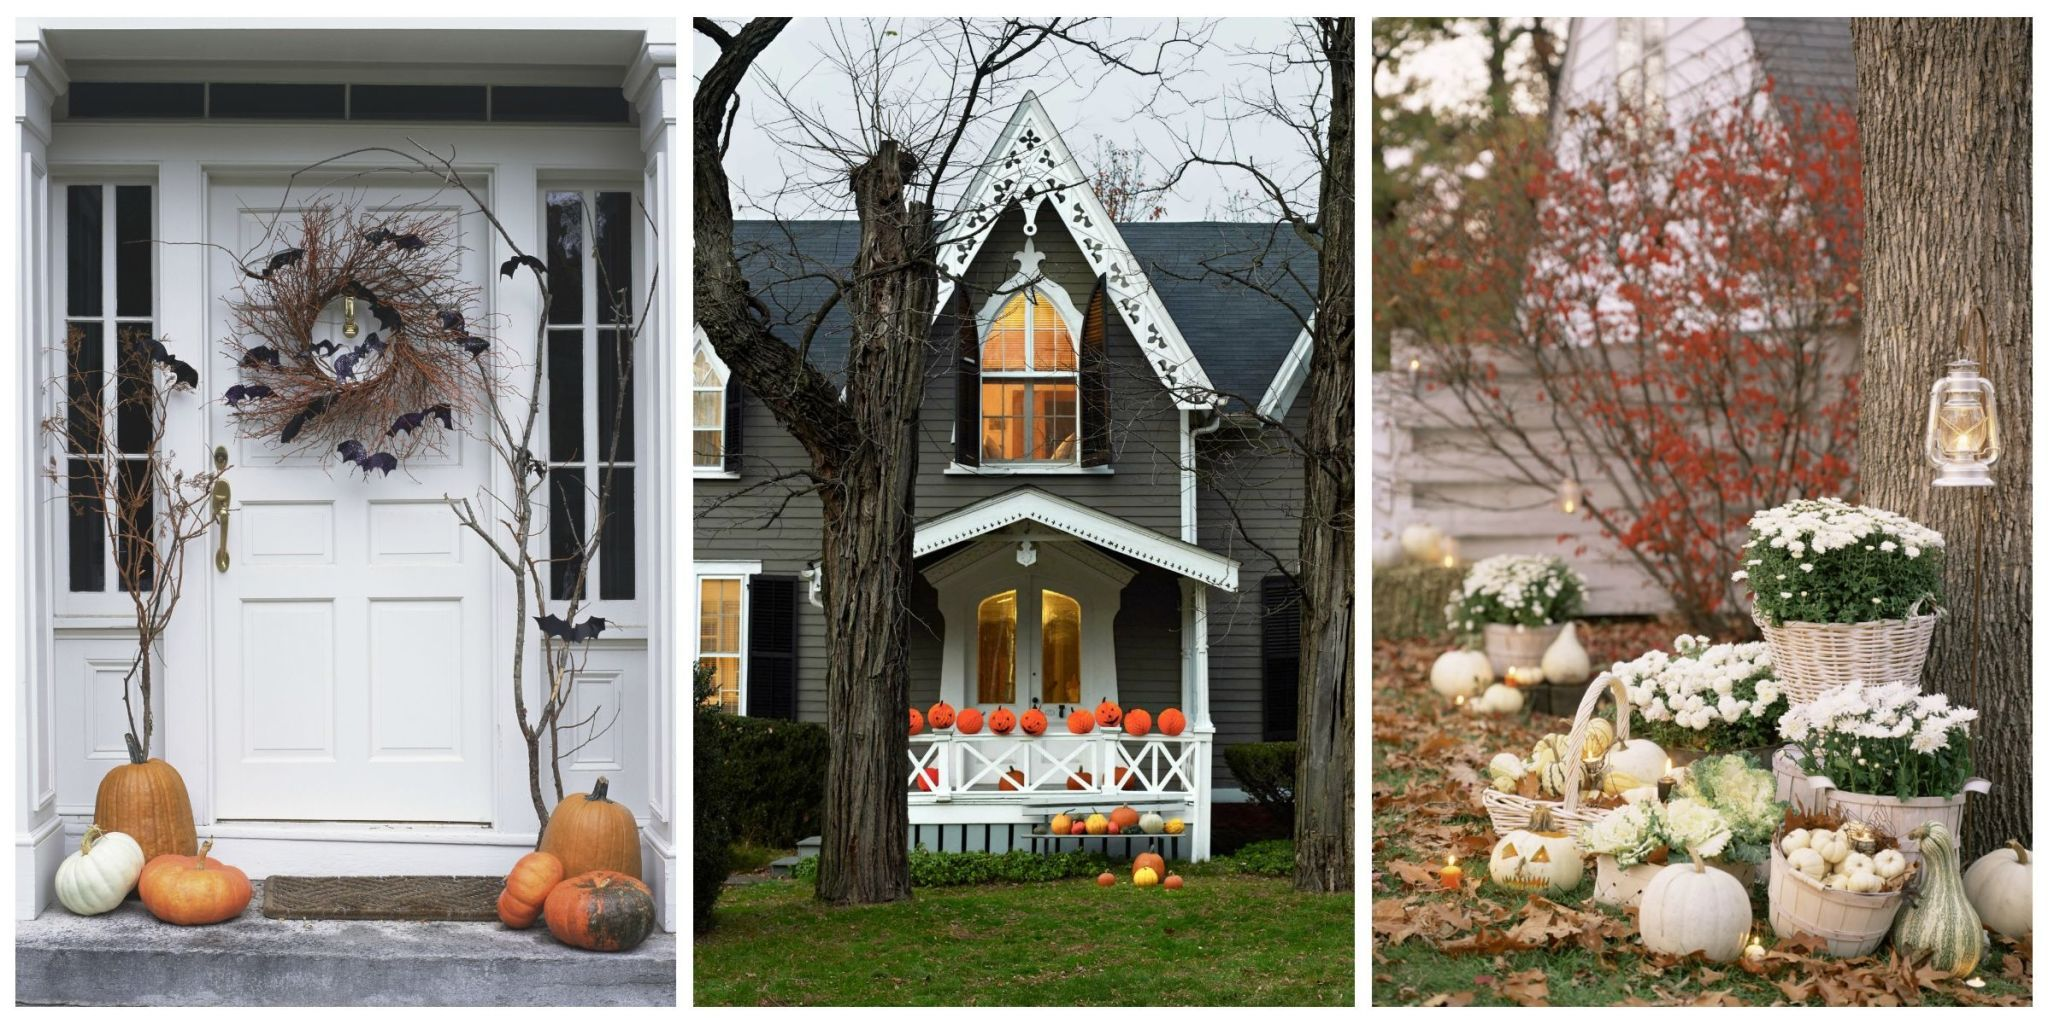 Trick And Treat Your Neighbors With These Wicked Ways To Transform Your  Front Door, Porch, Or Yard For Halloween.